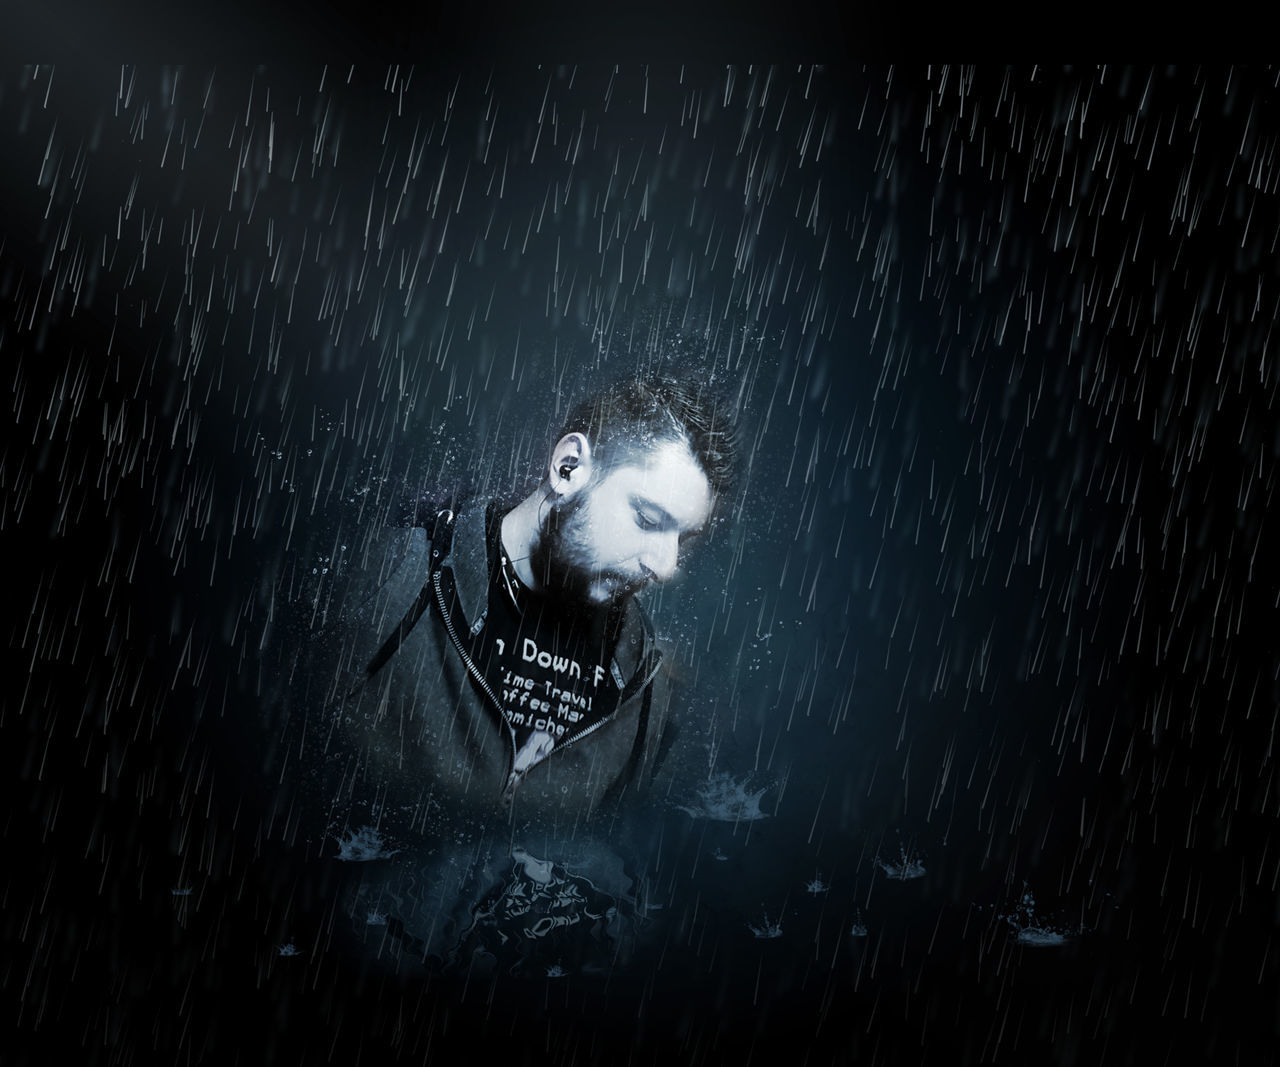 Digital Composite Image Of Man During Rainfall At Night